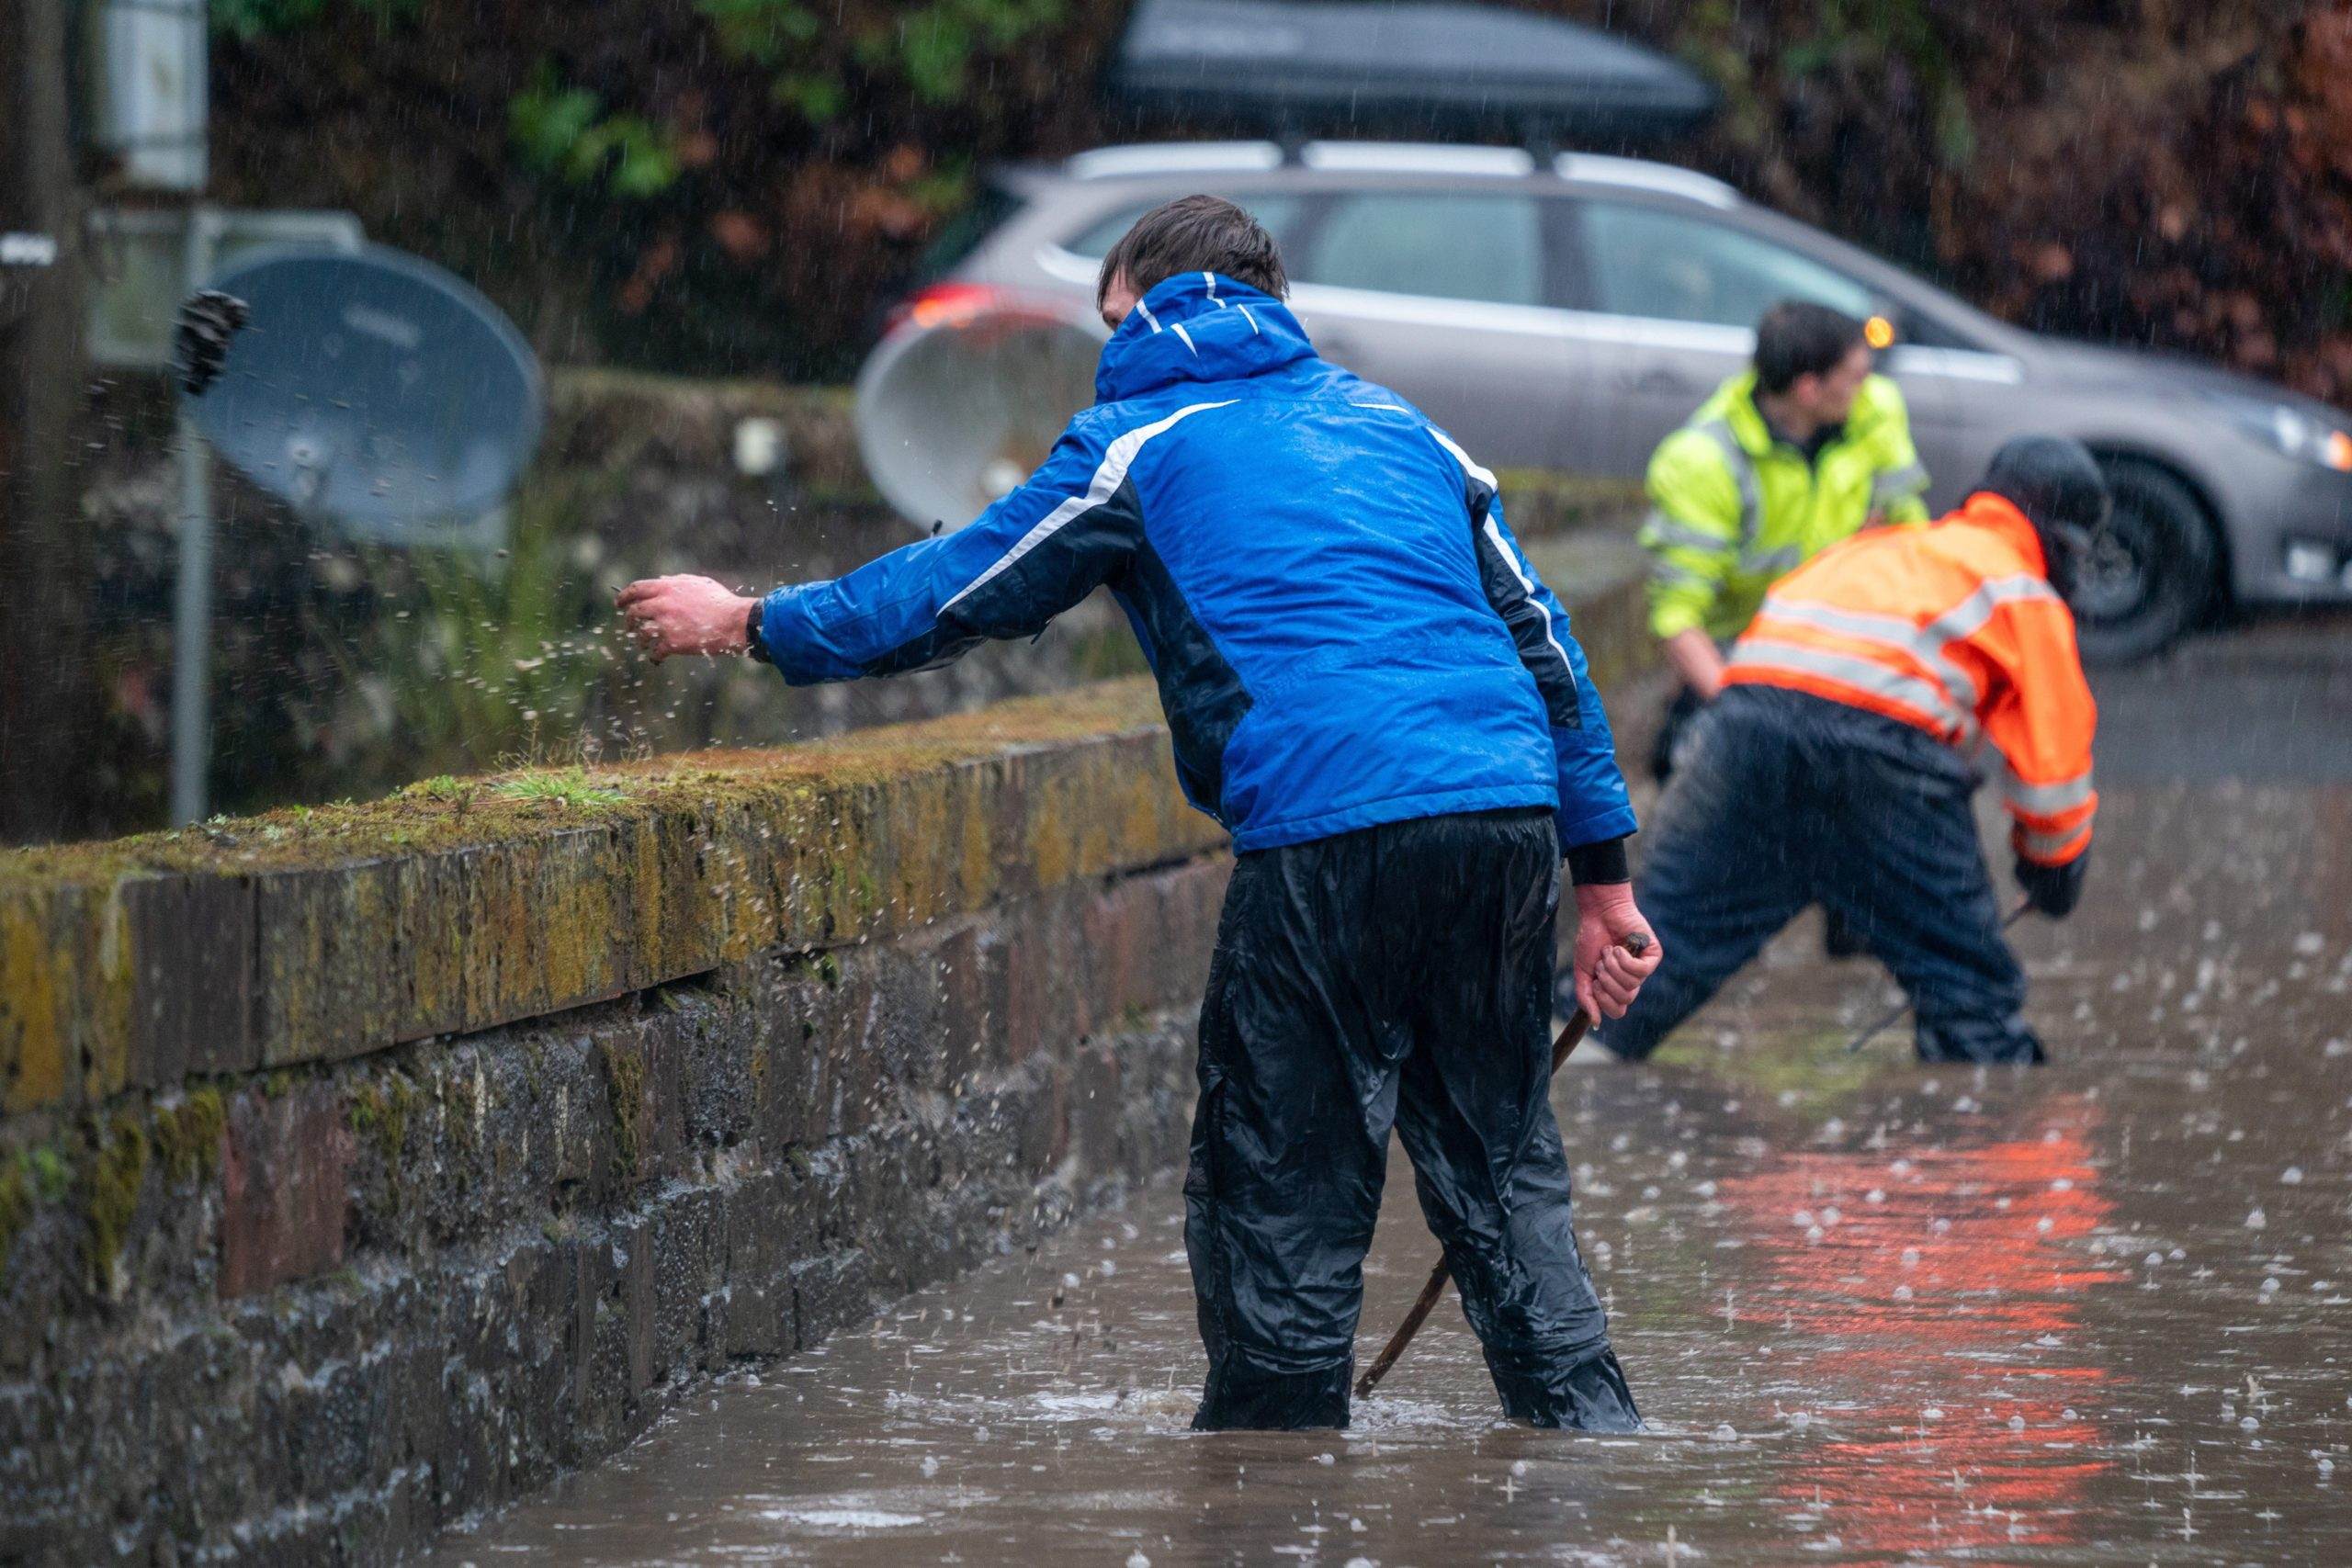 Locals rally to clear the debris preventing the flow of flood water back into the river Cally and allow the traffic to cross the bridge freely. Picture: Kenny Smith.